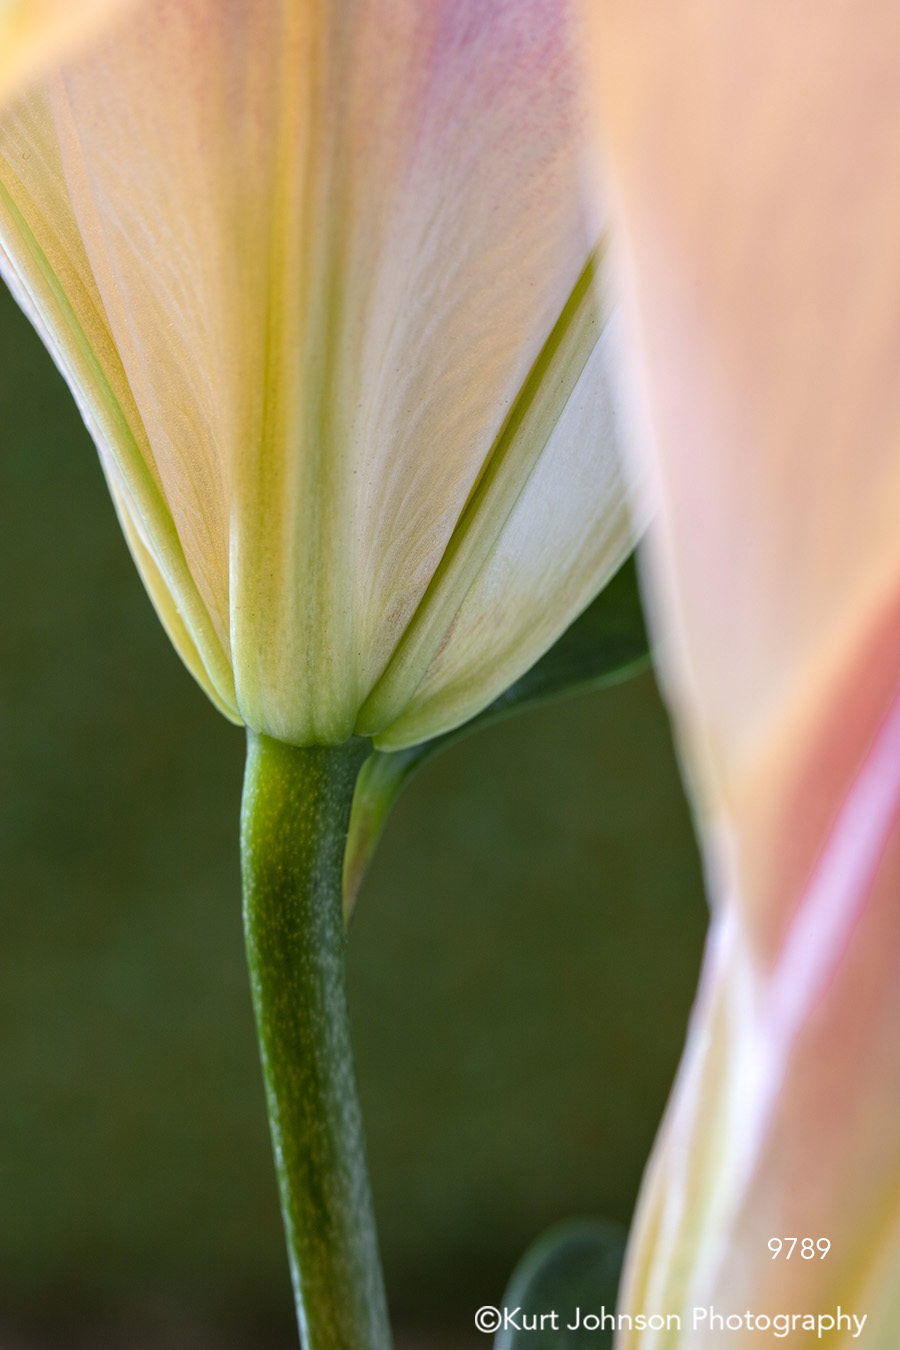 lily detail green stem delicate pink white flower flowers contemporary close up macro